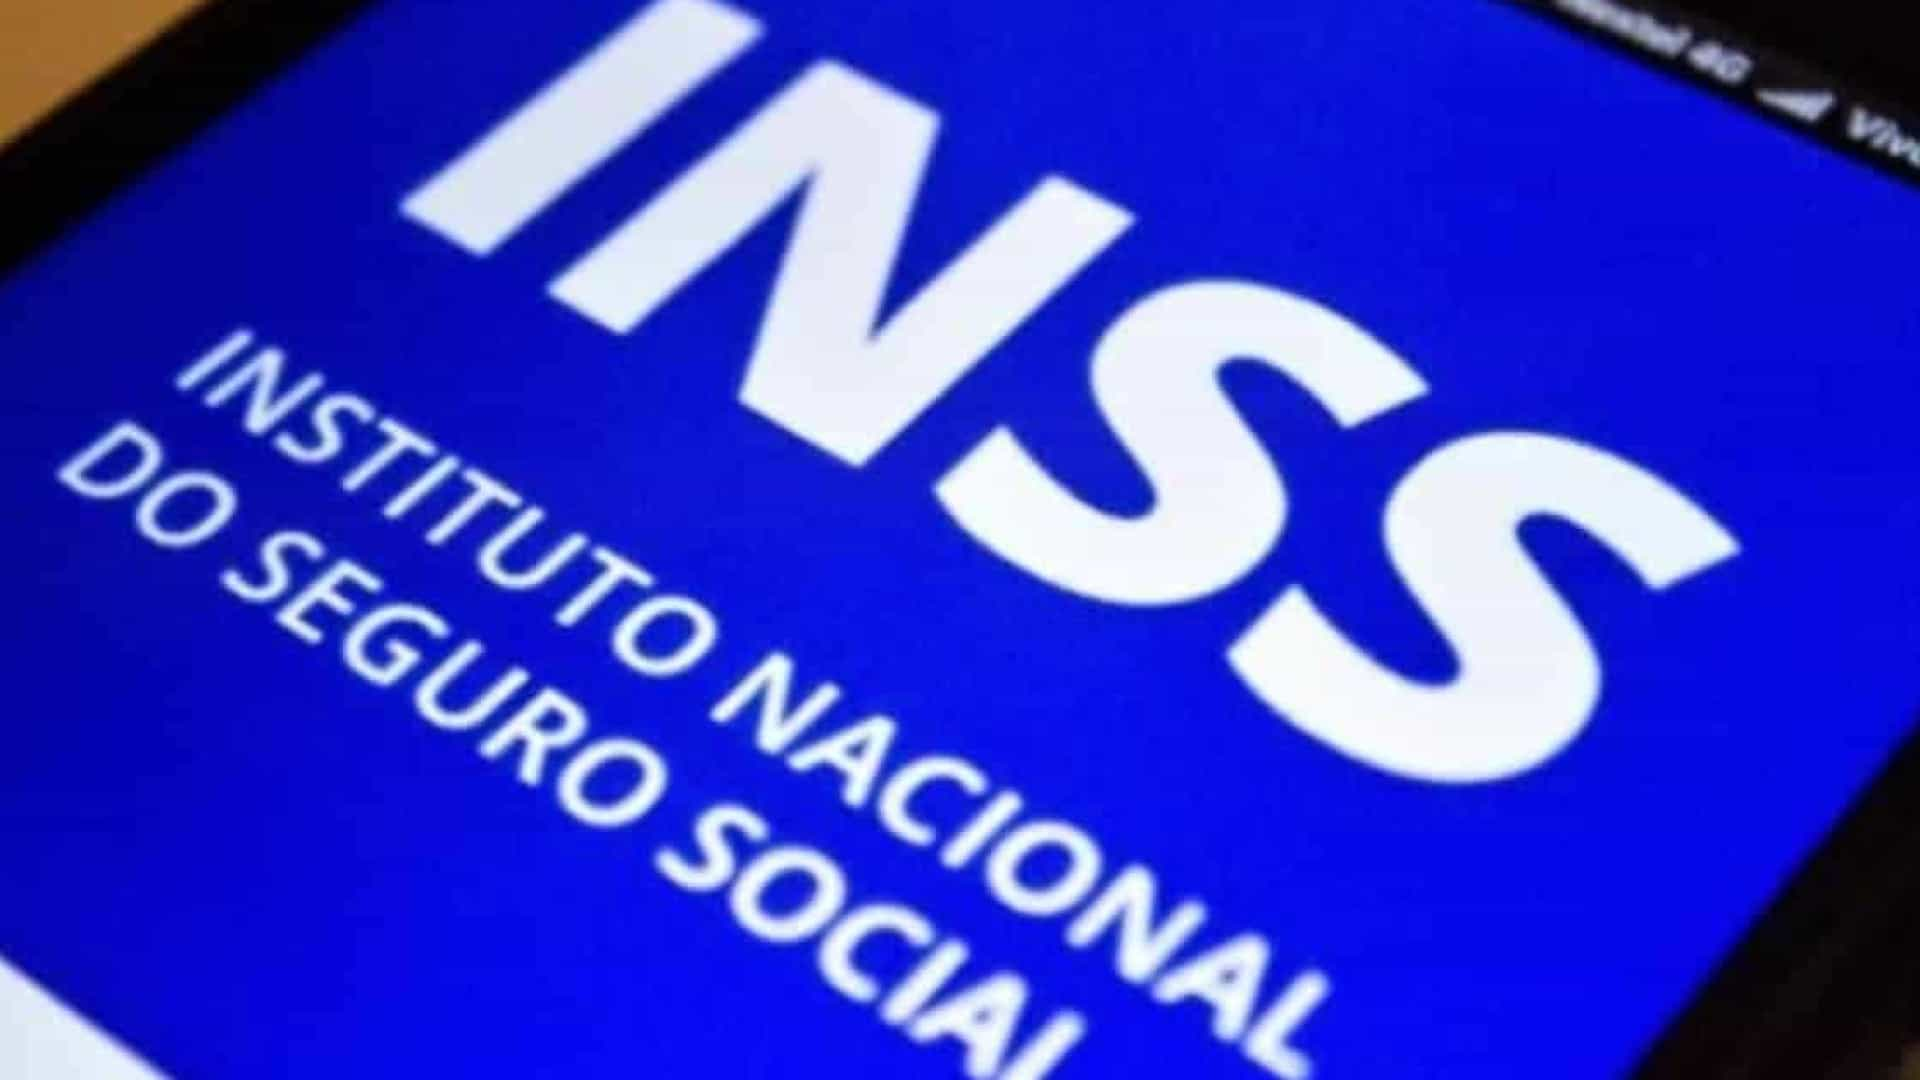 Com 55 votos a favor, Senado aprova MP antifraudes no INSS